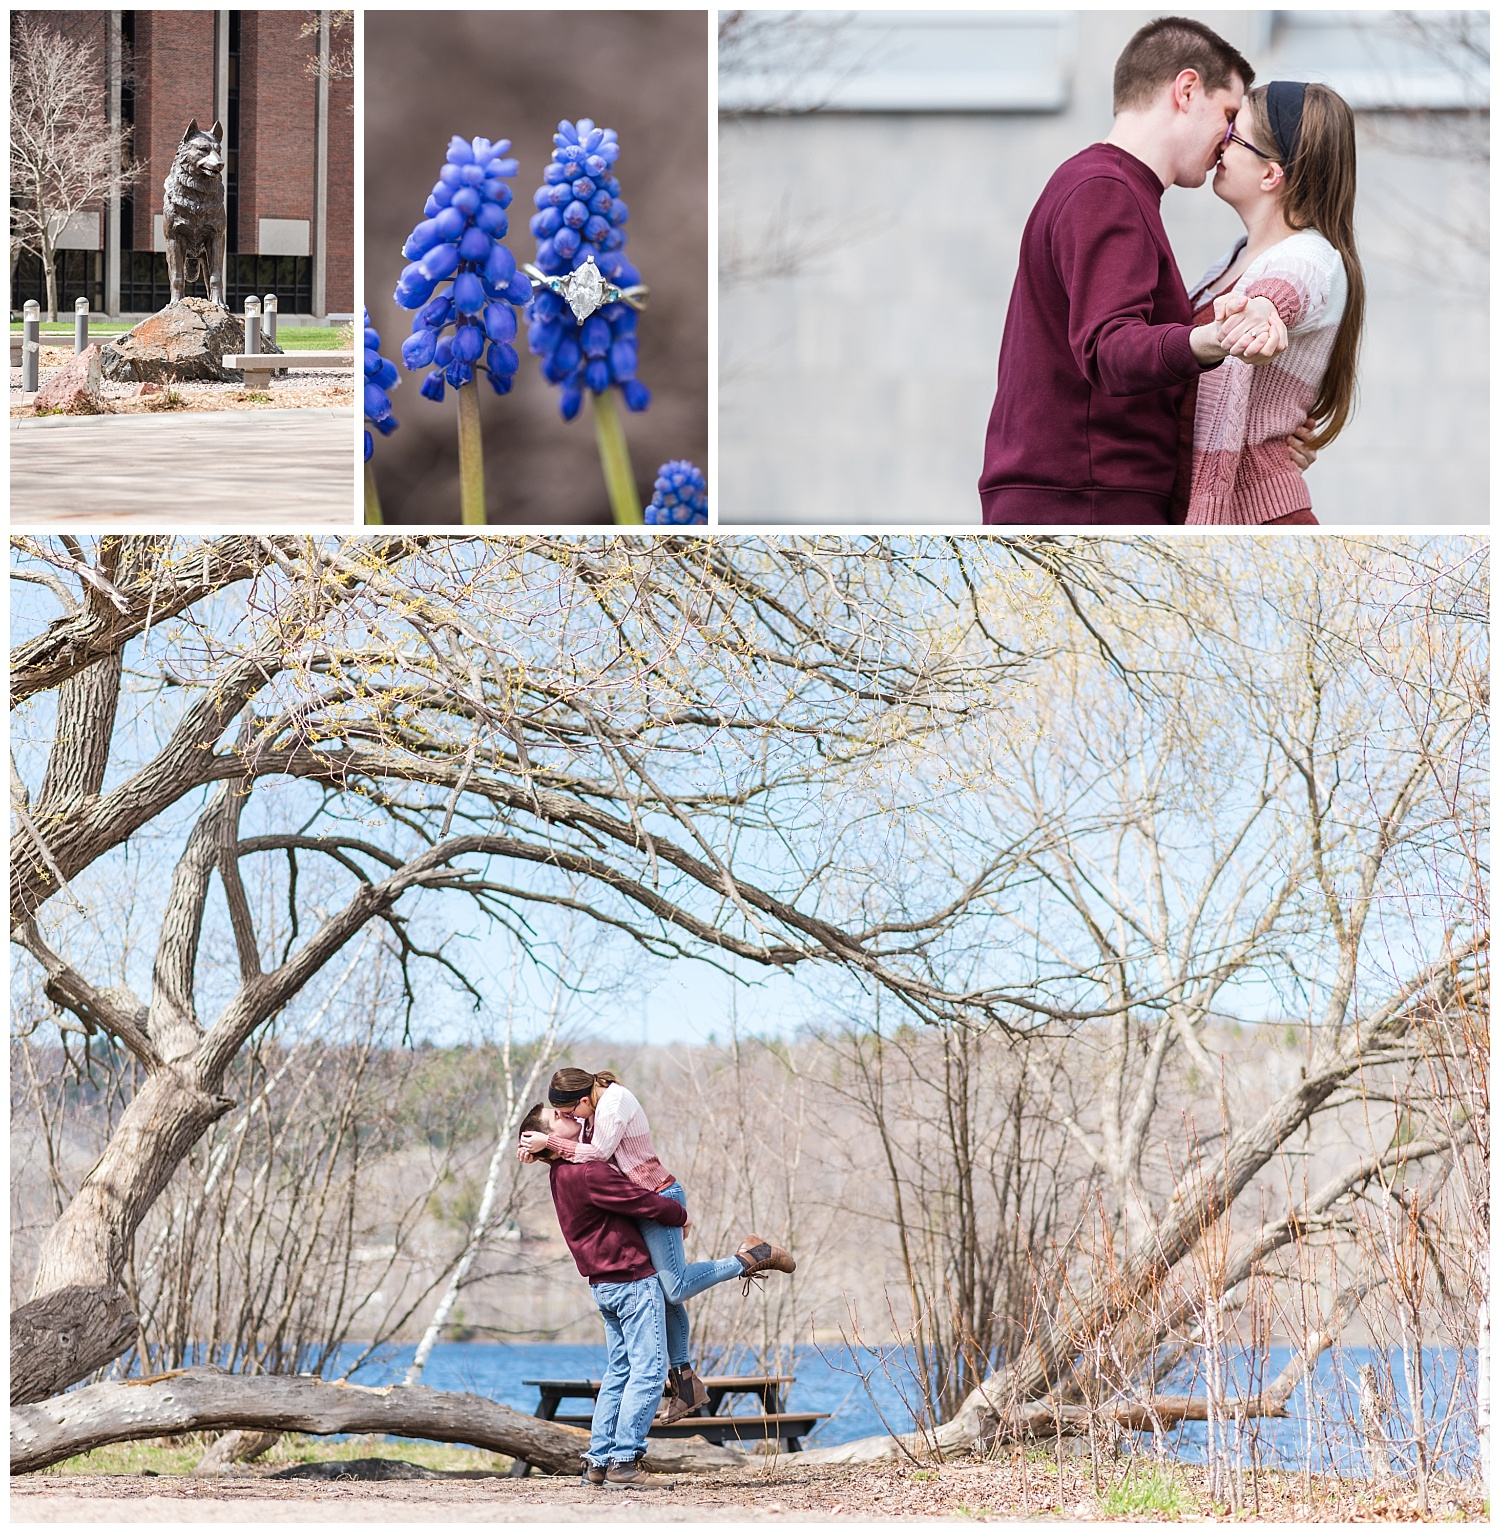 Michigan Tech University Engagement Session in Houghton Michigan Blog Collage